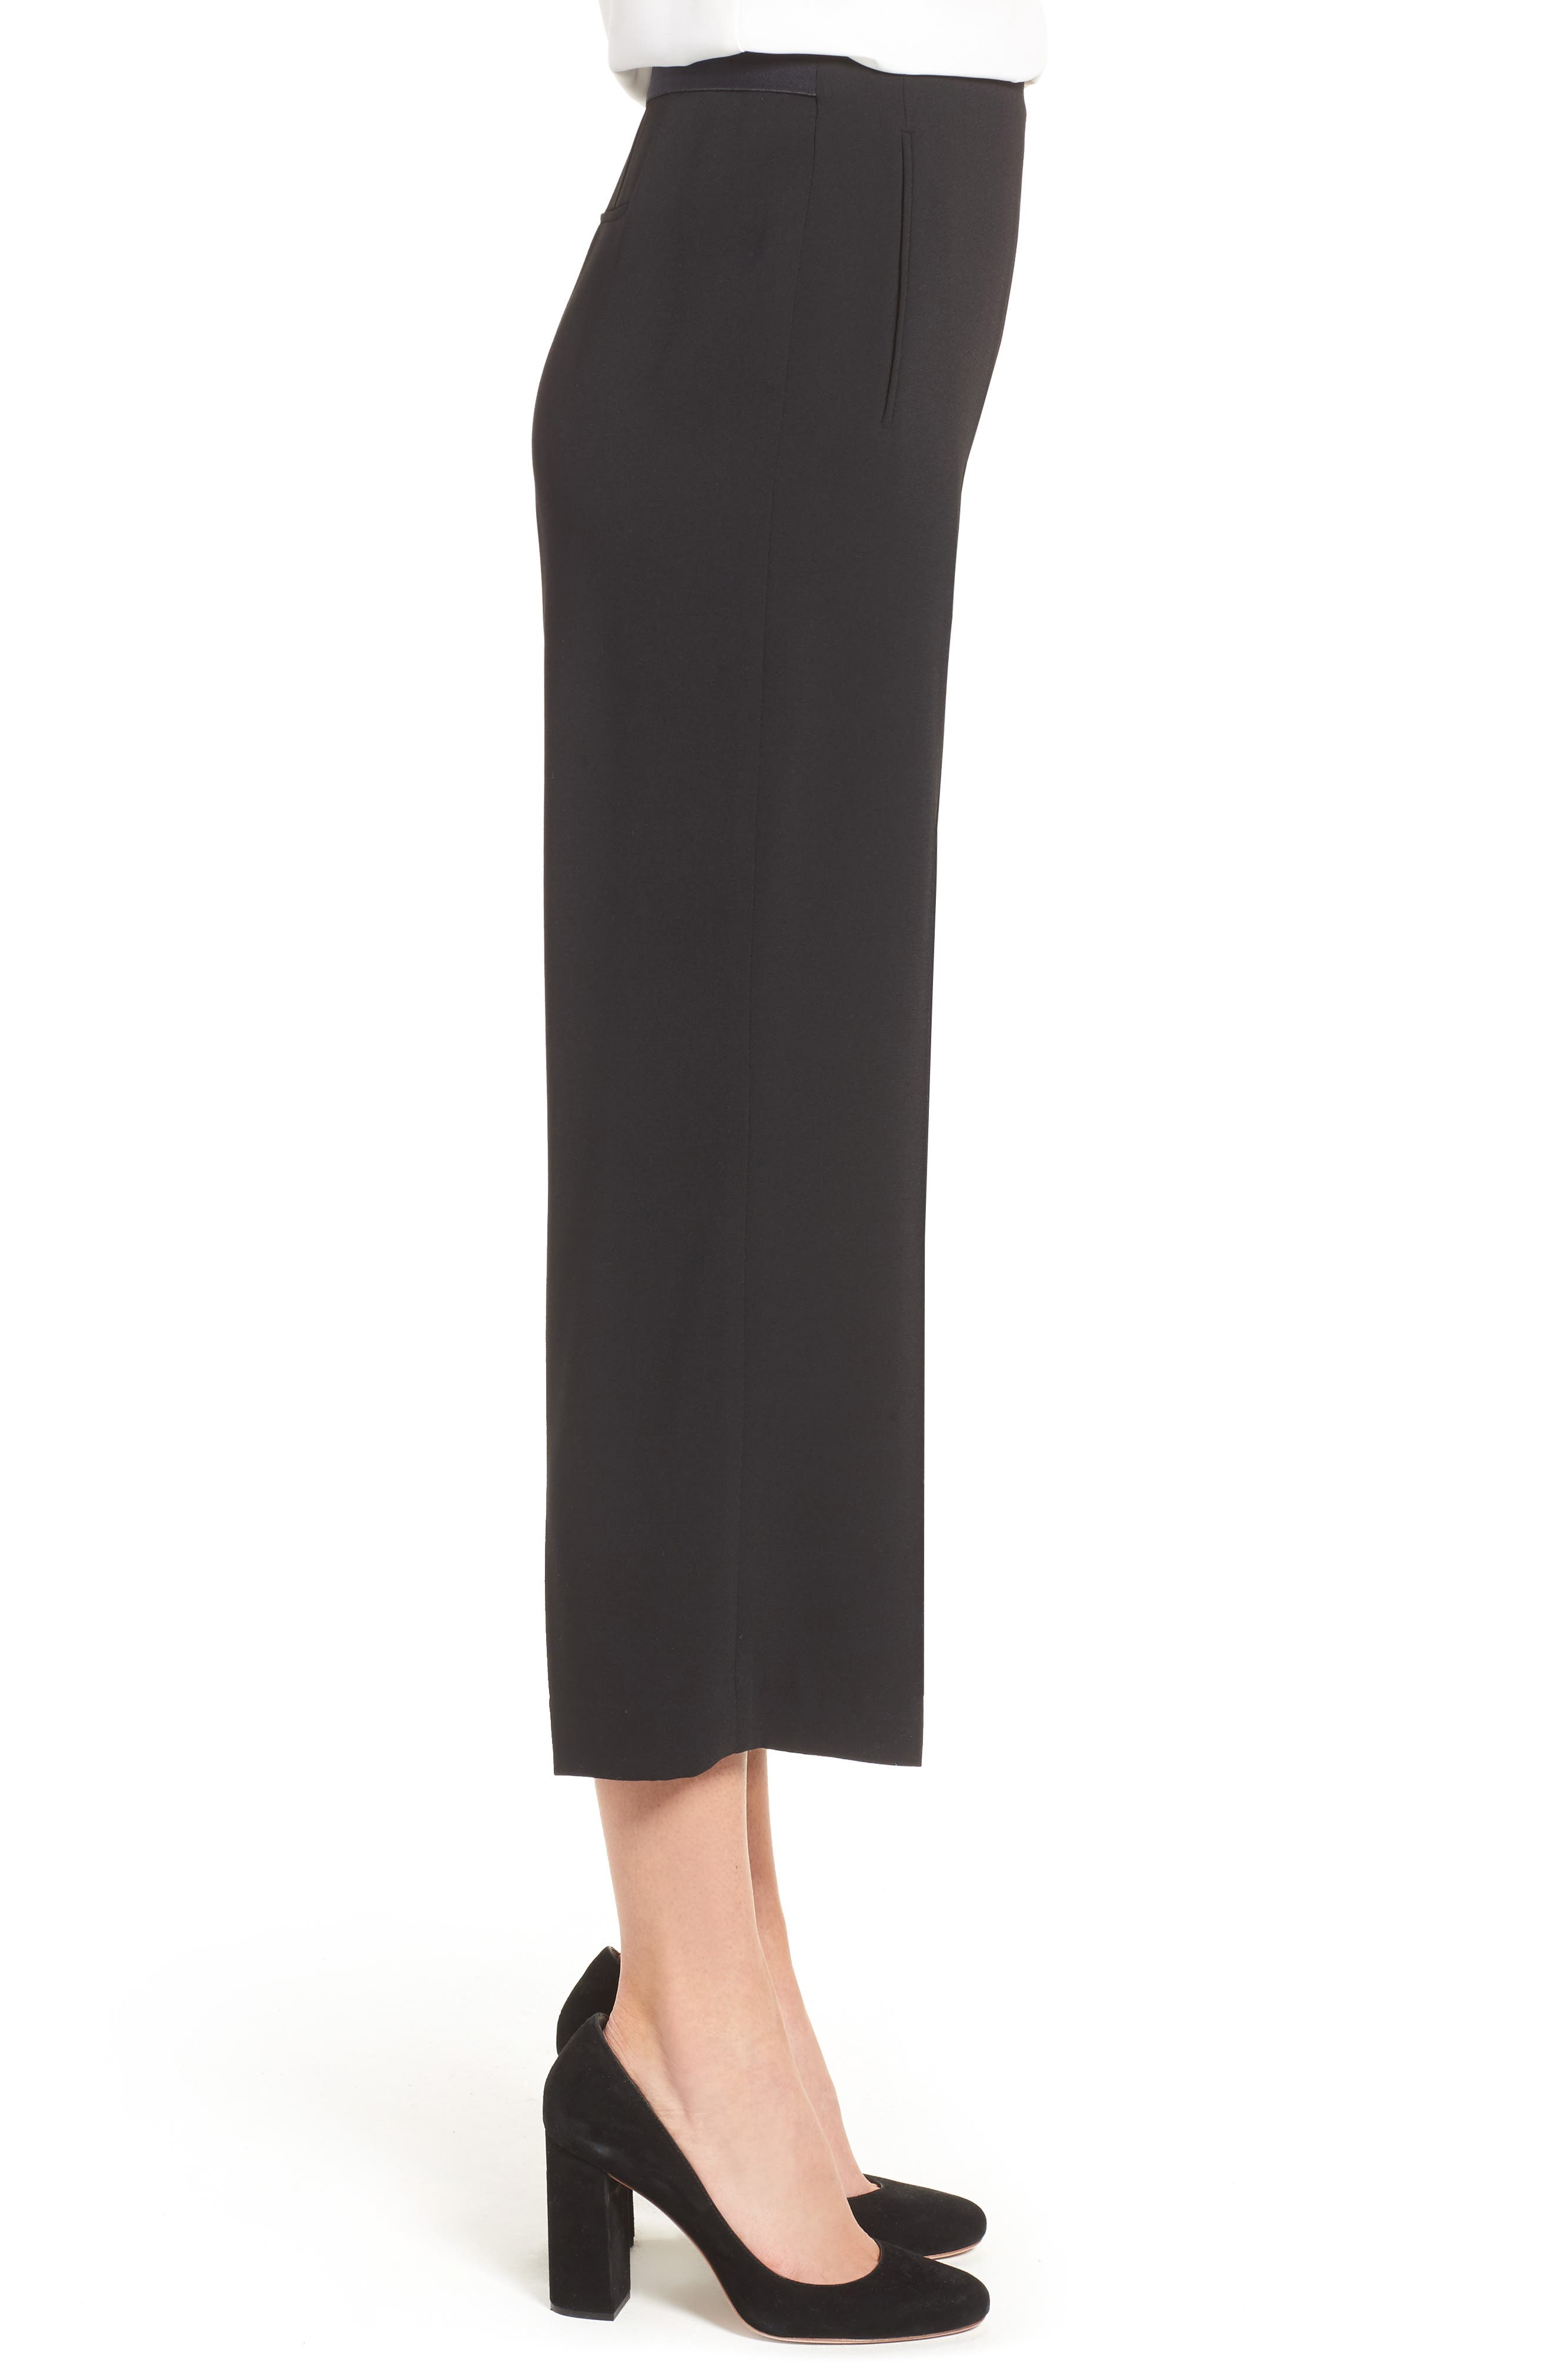 Moss Crepe Crop Trousers,                             Alternate thumbnail 3, color,                             001